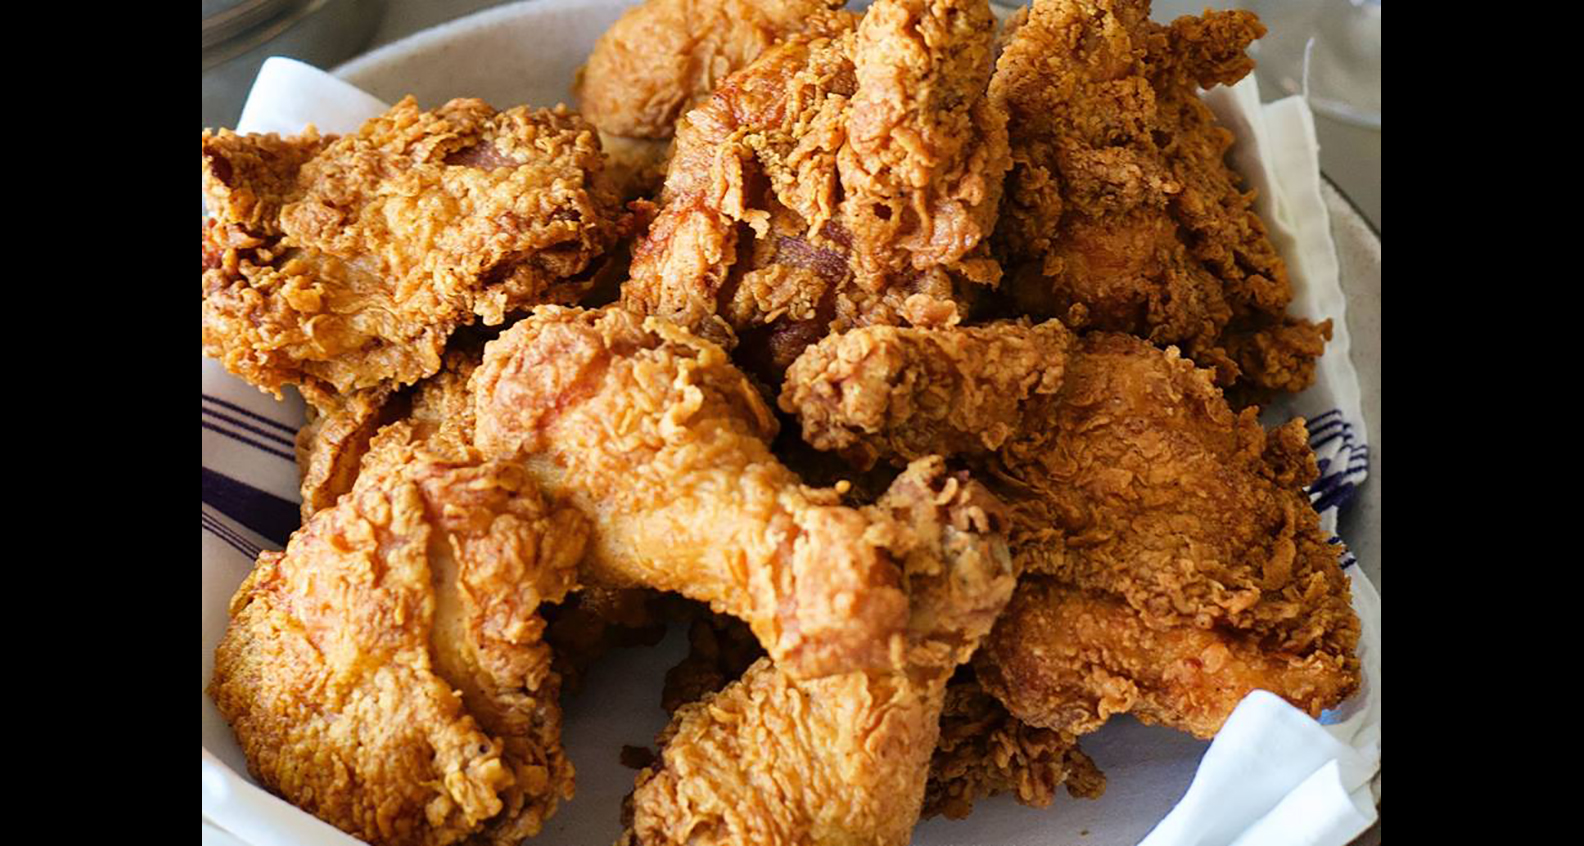 Fried chicken from Low Country Kitchen